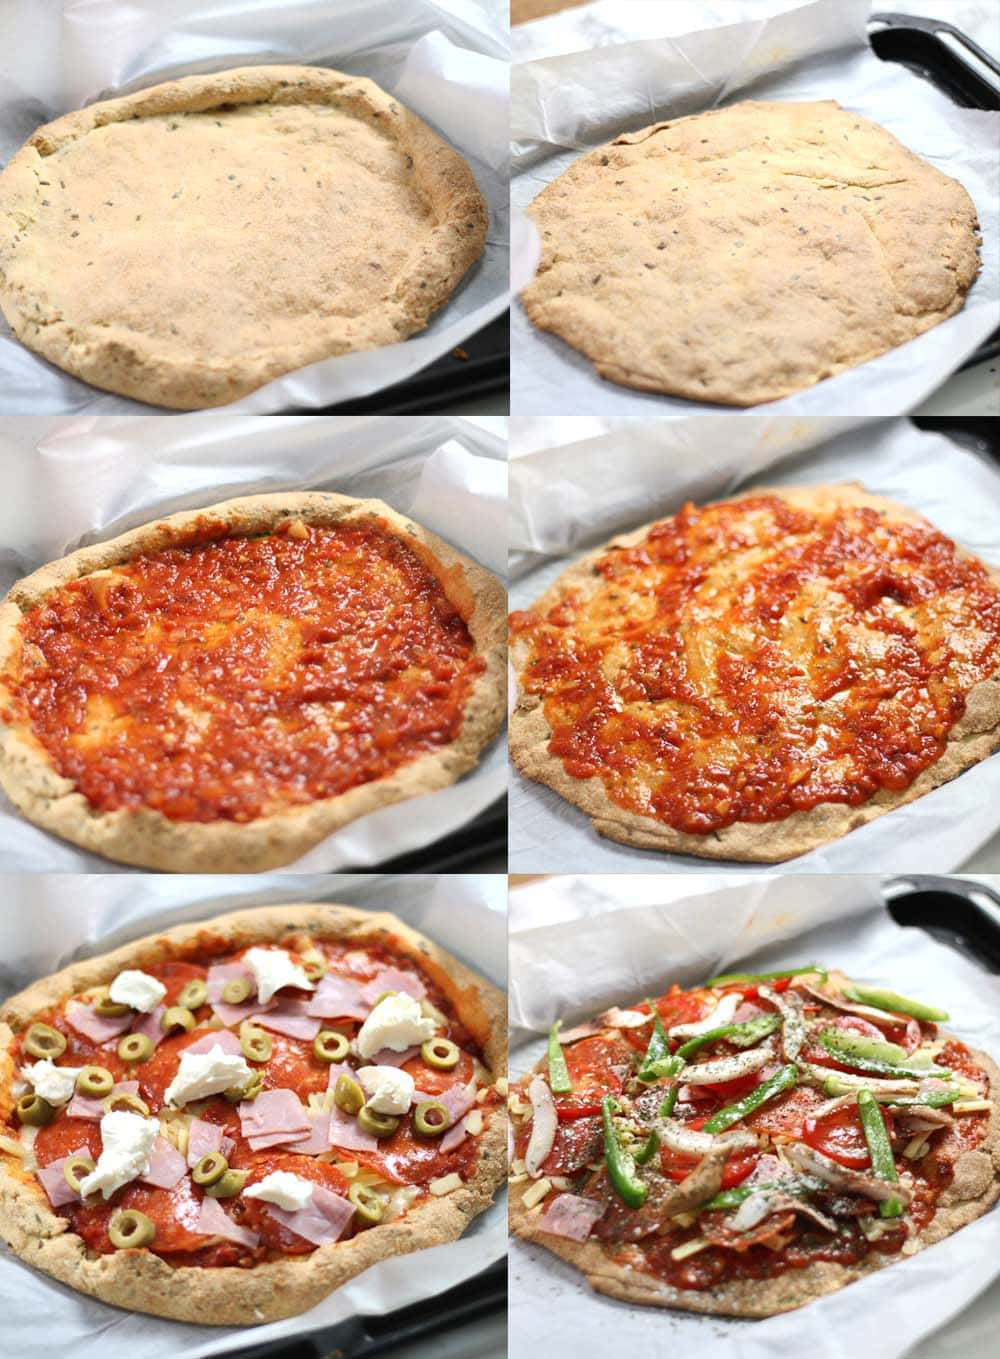 Images showing how to make a thick or thin gluten free pizza crust.